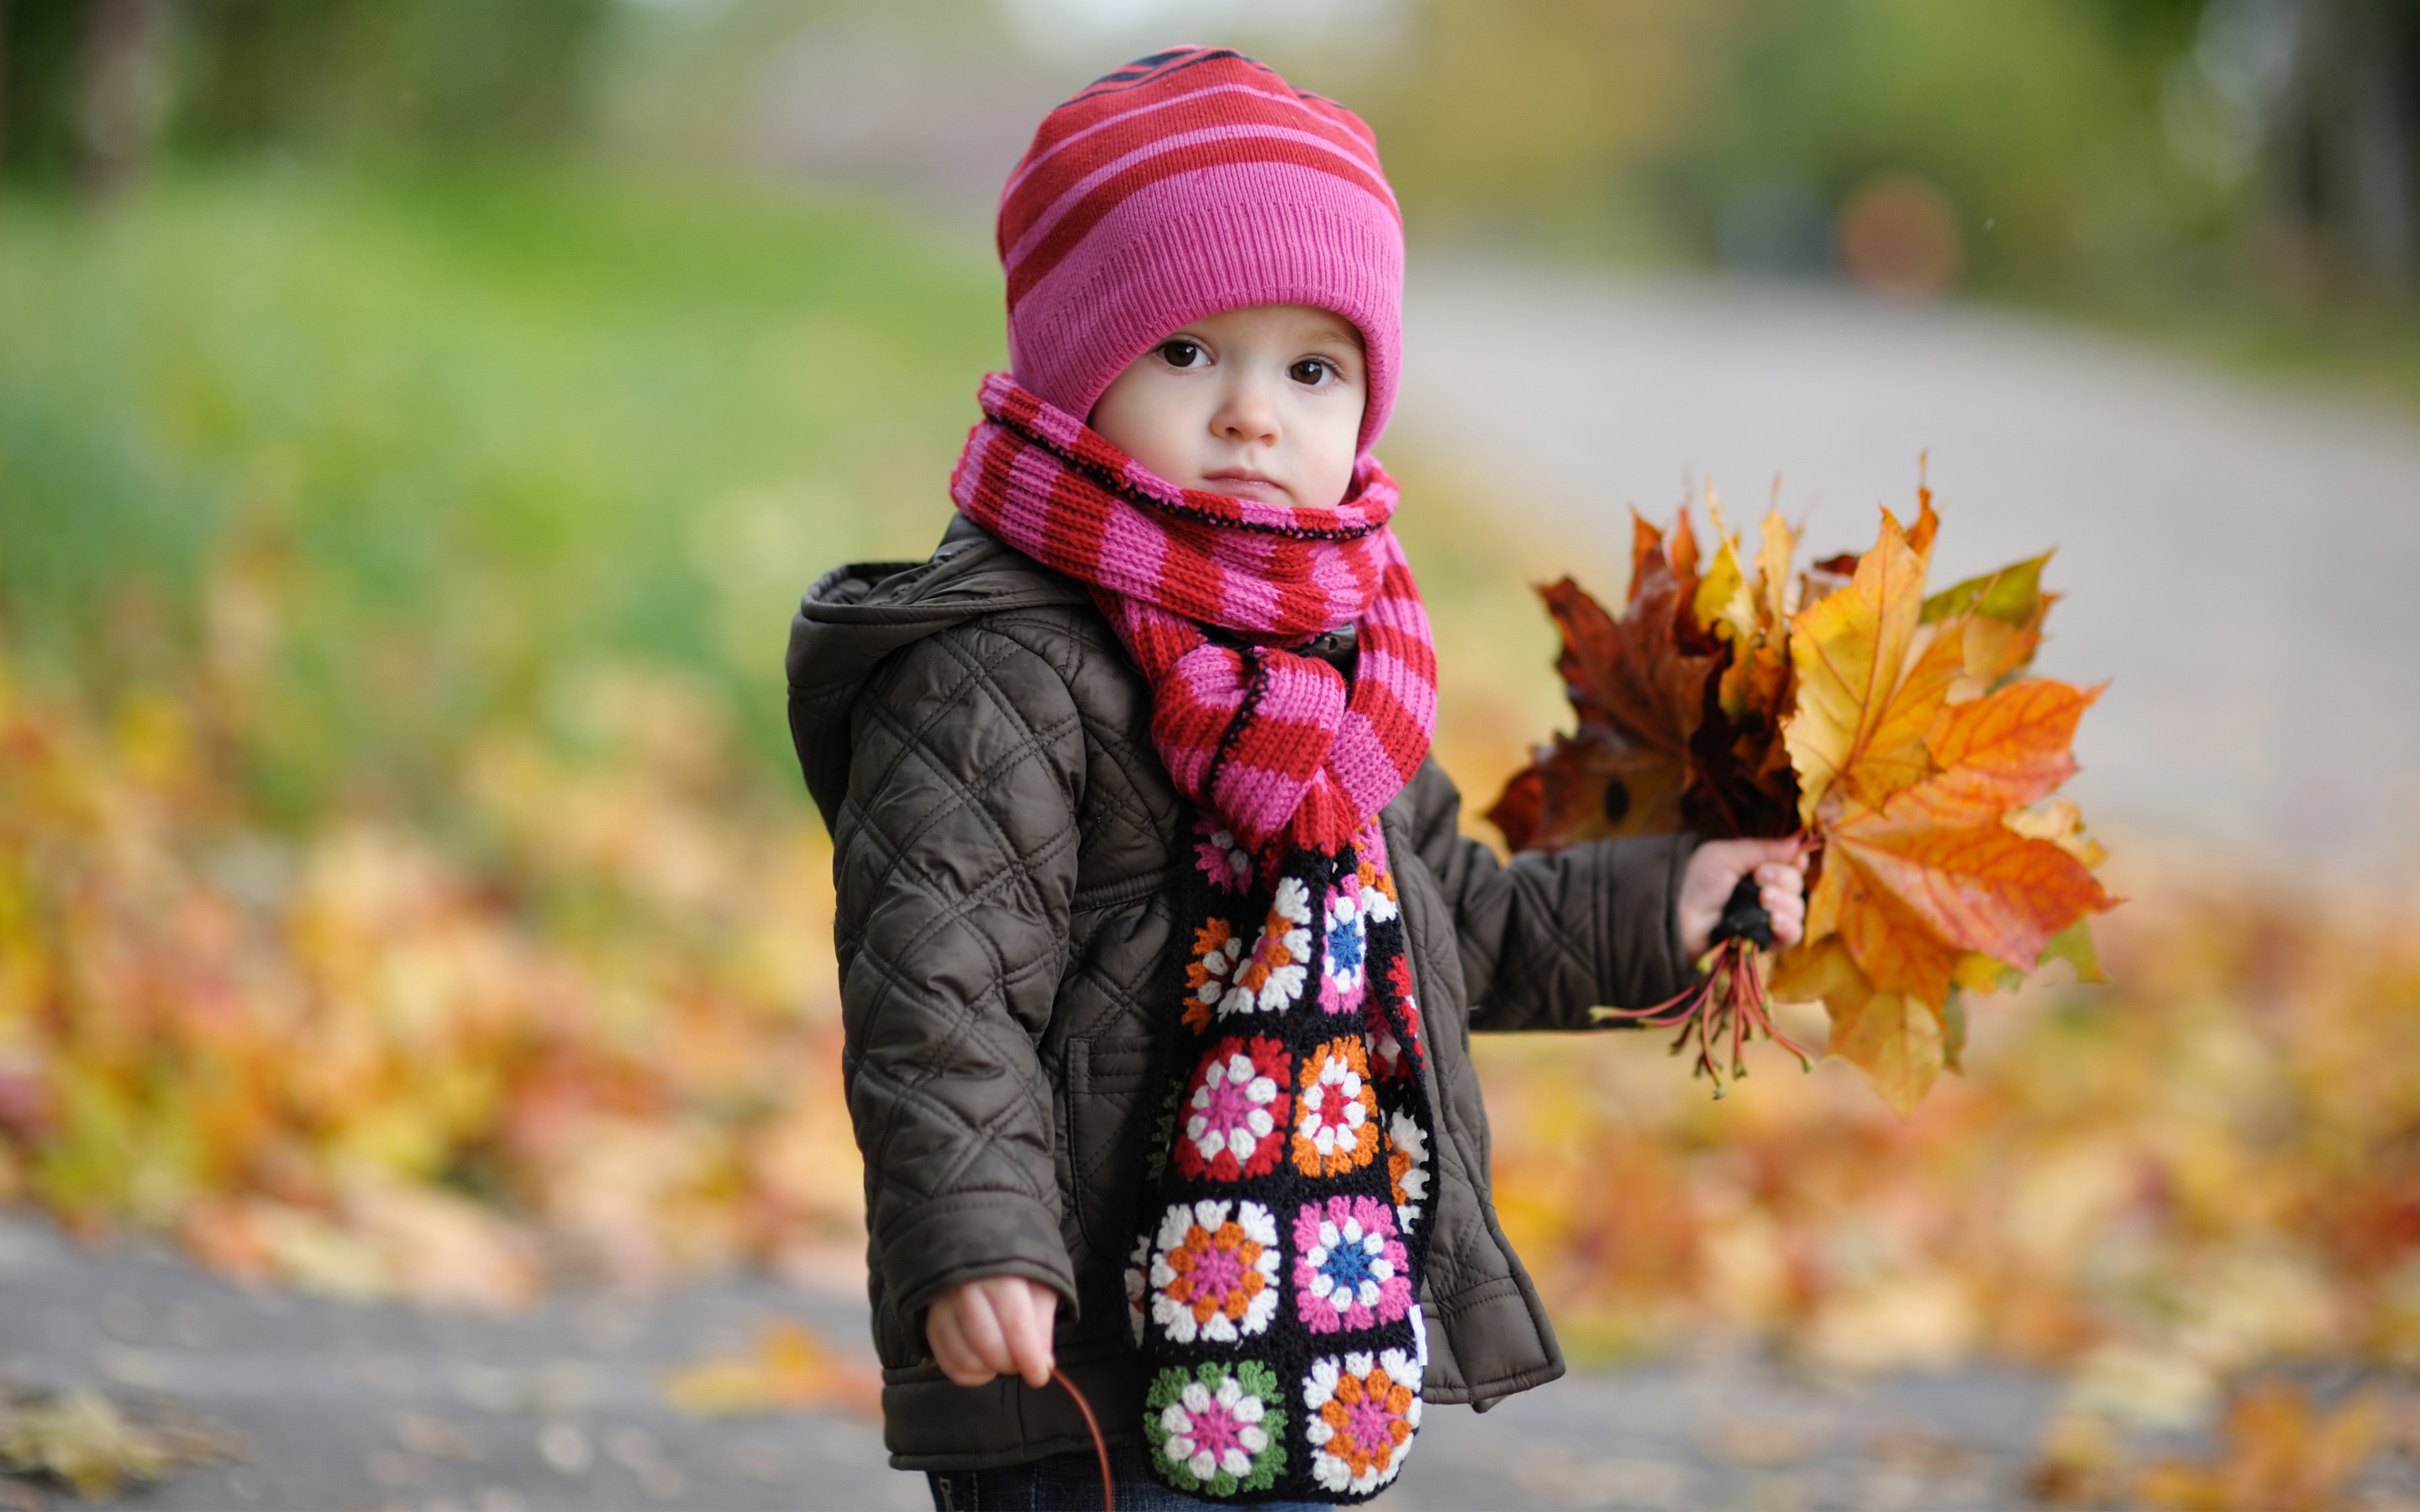 2880x1800 Cute Baby in Autumn Wallpapers | HD Wallpapers